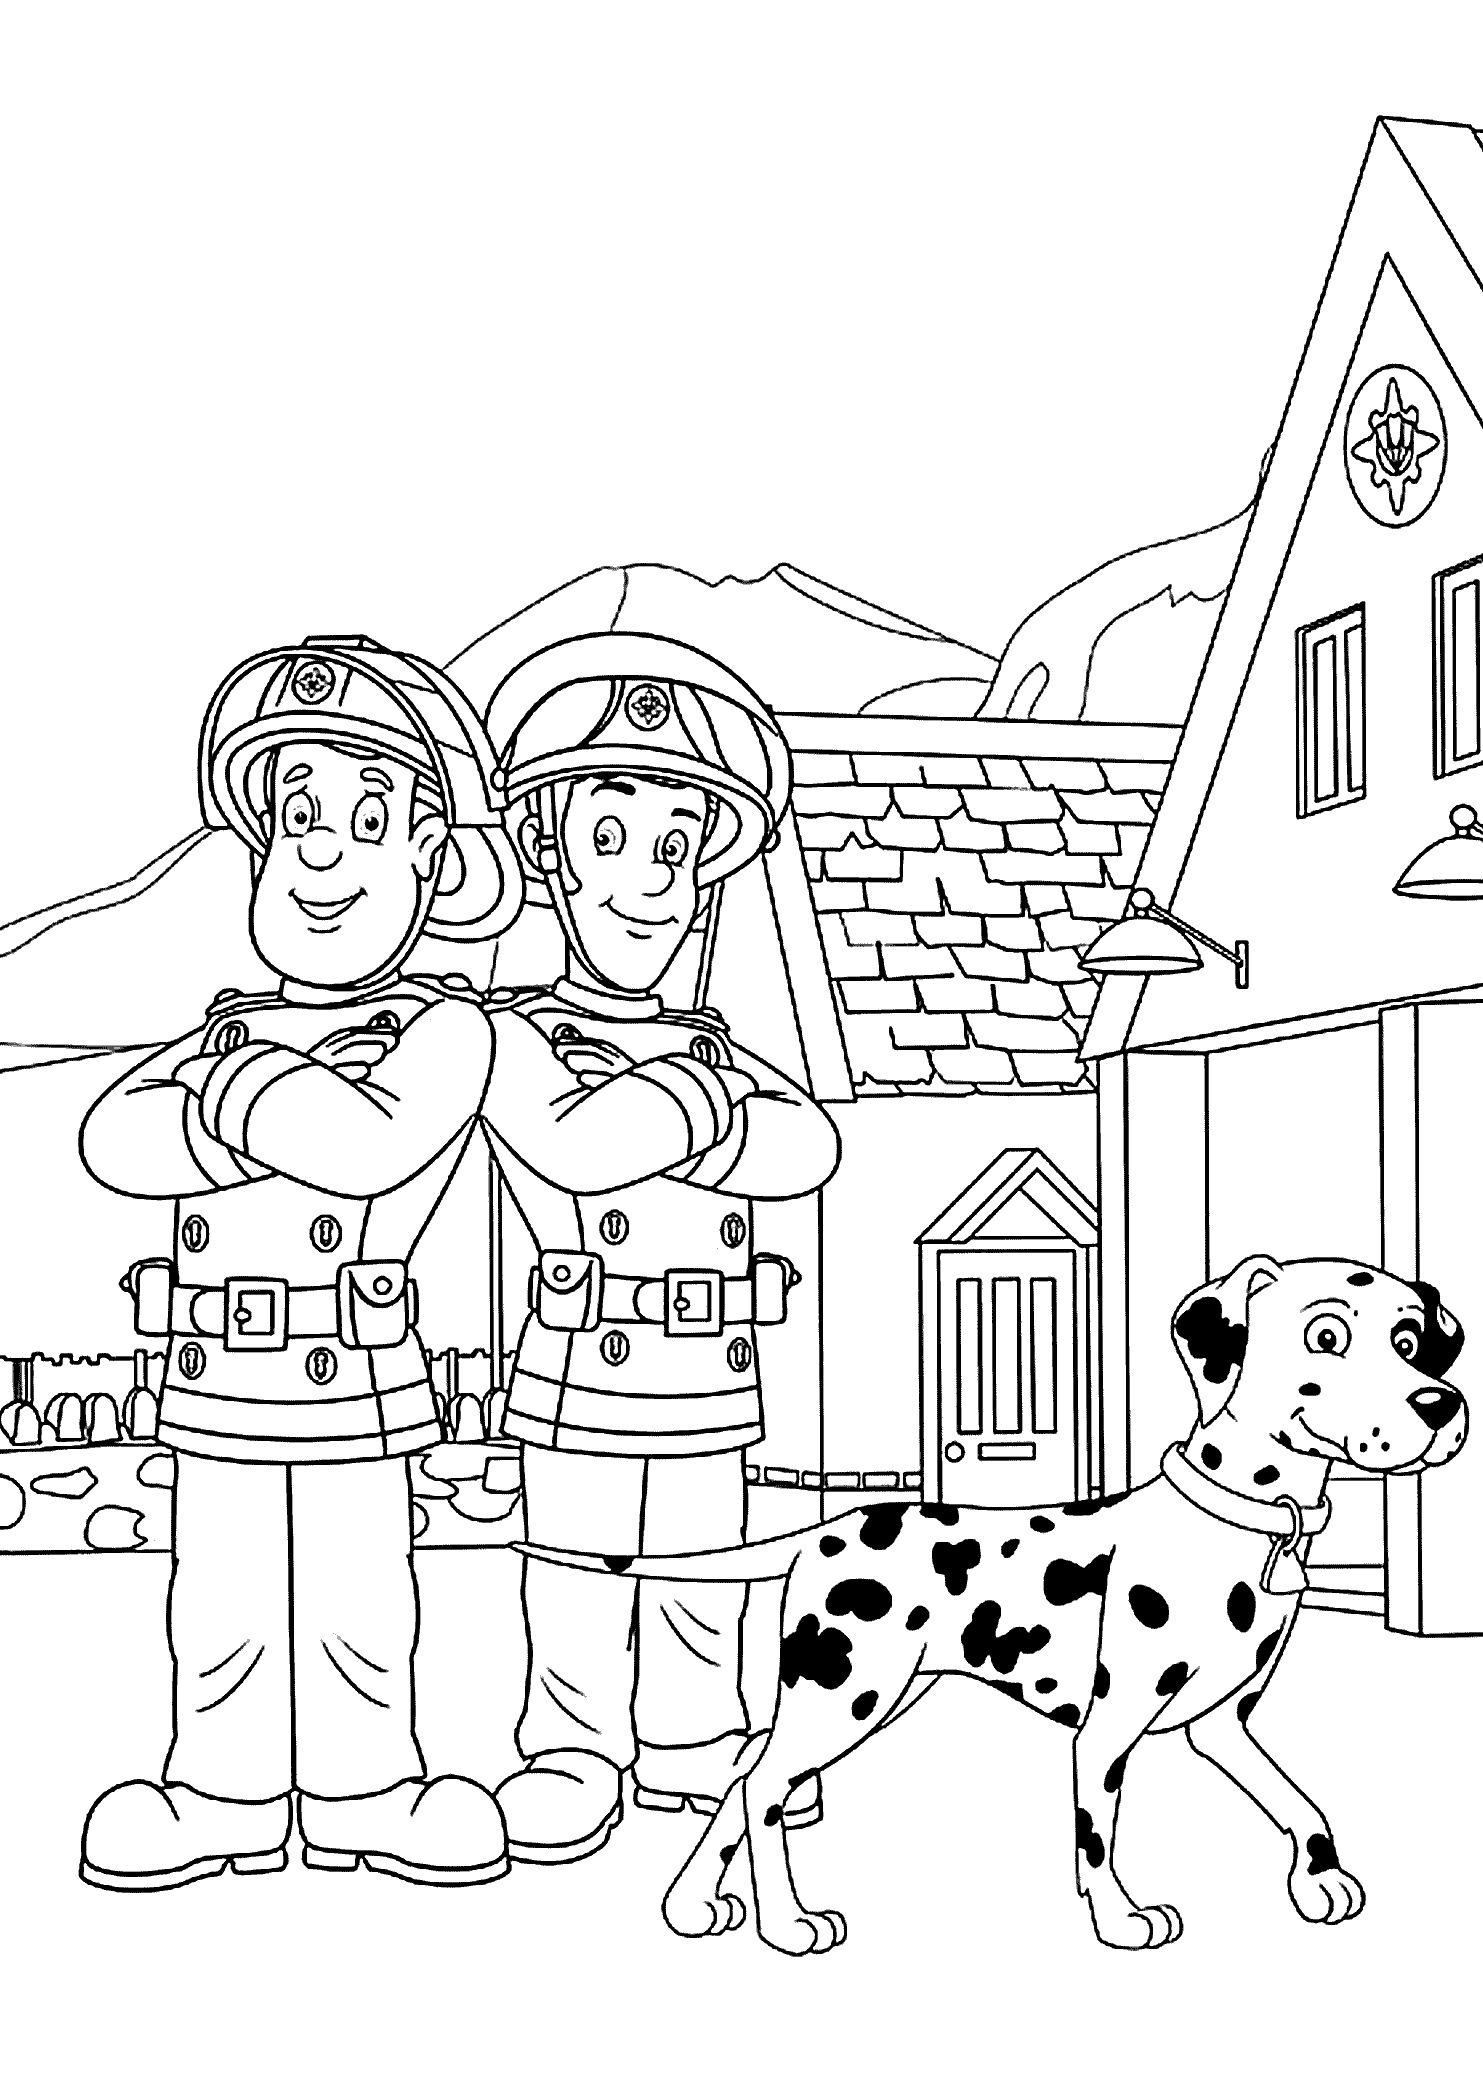 38 Fireman Sam Printable Colouring Pages In 2020 Bear Coloring Pages Coloring Pages Fireman Sam